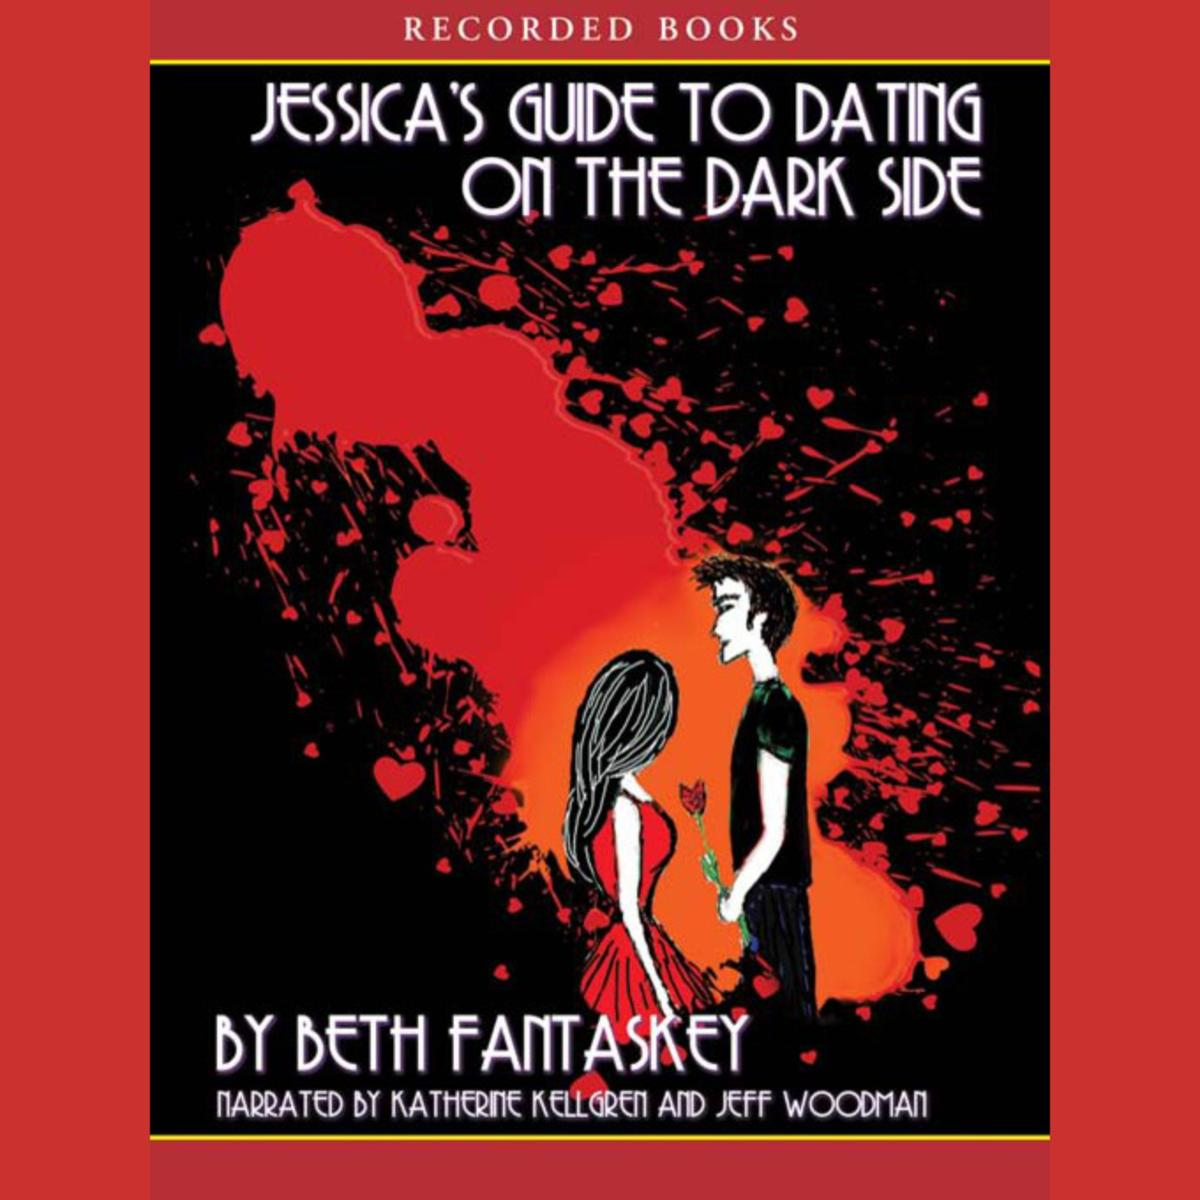 Jessica s guide to dating on the dark side